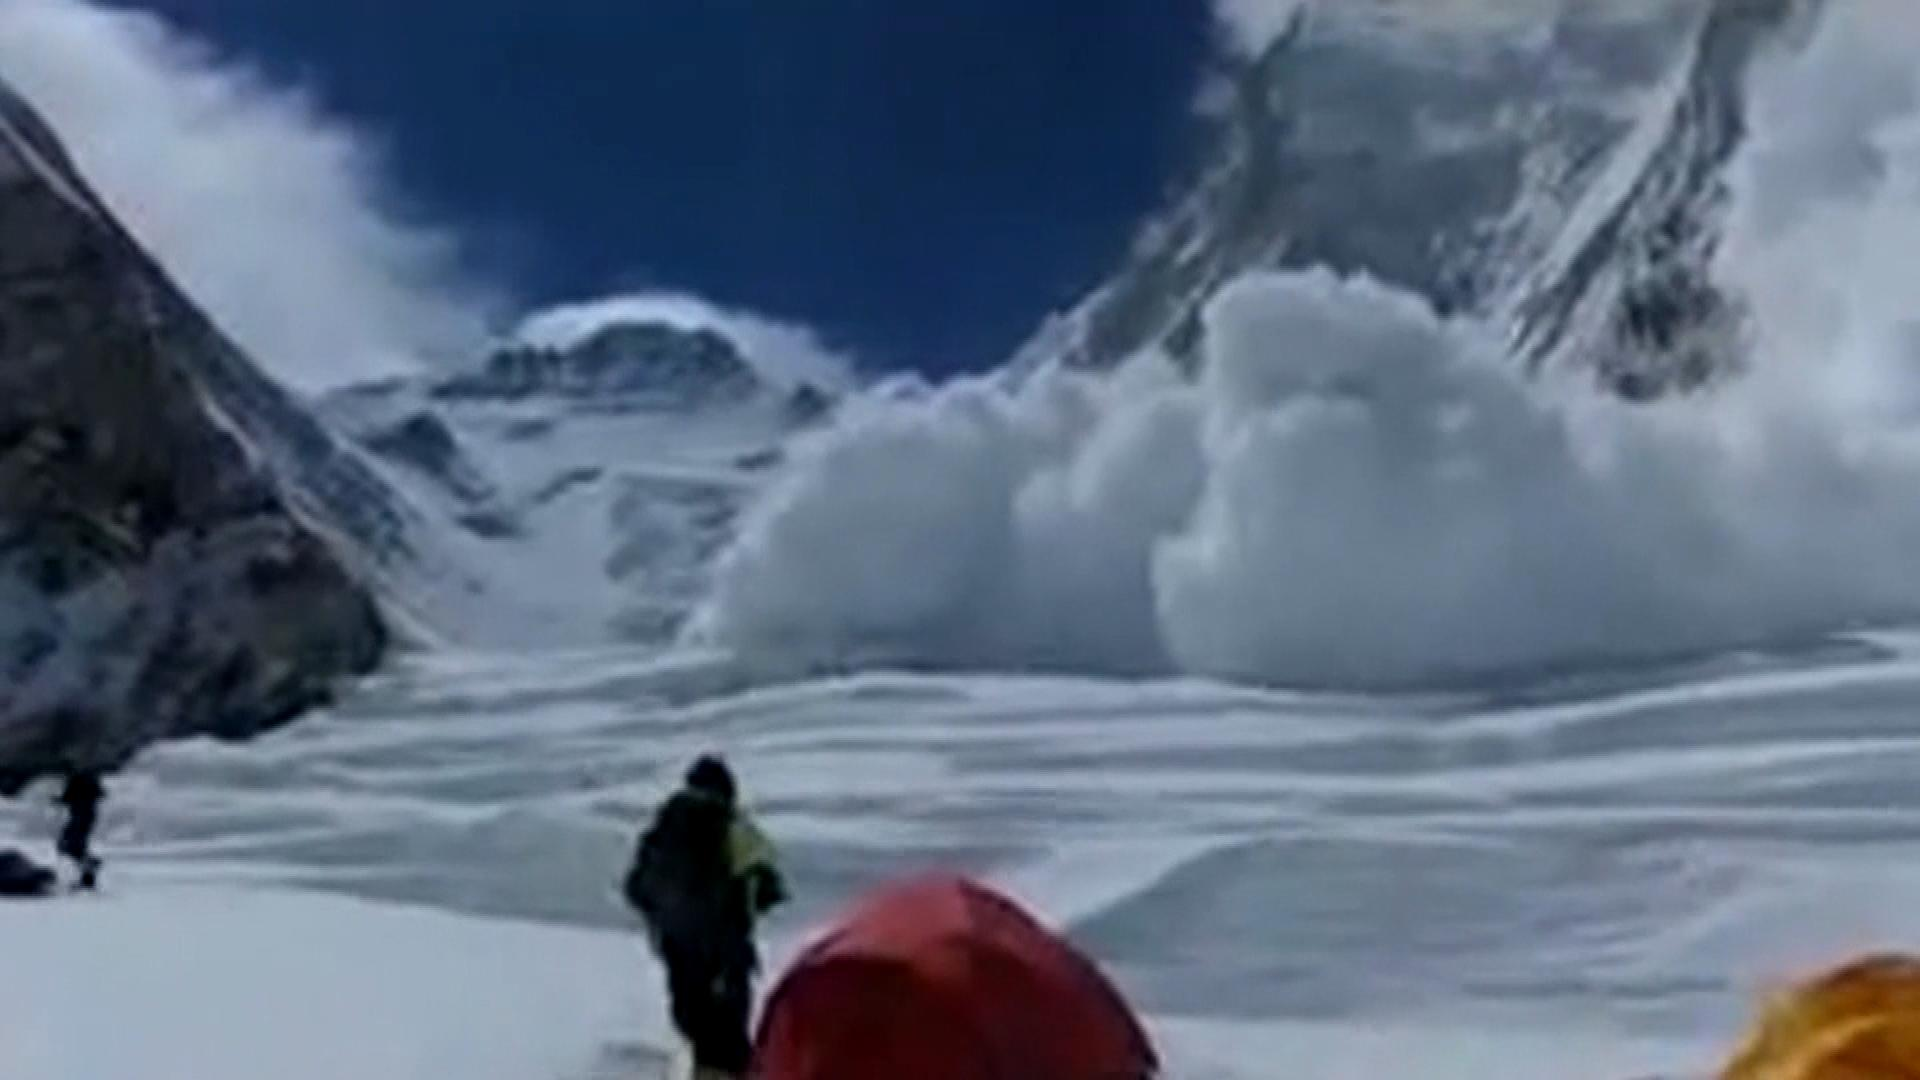 An image of the avalanche (credit: CBS)